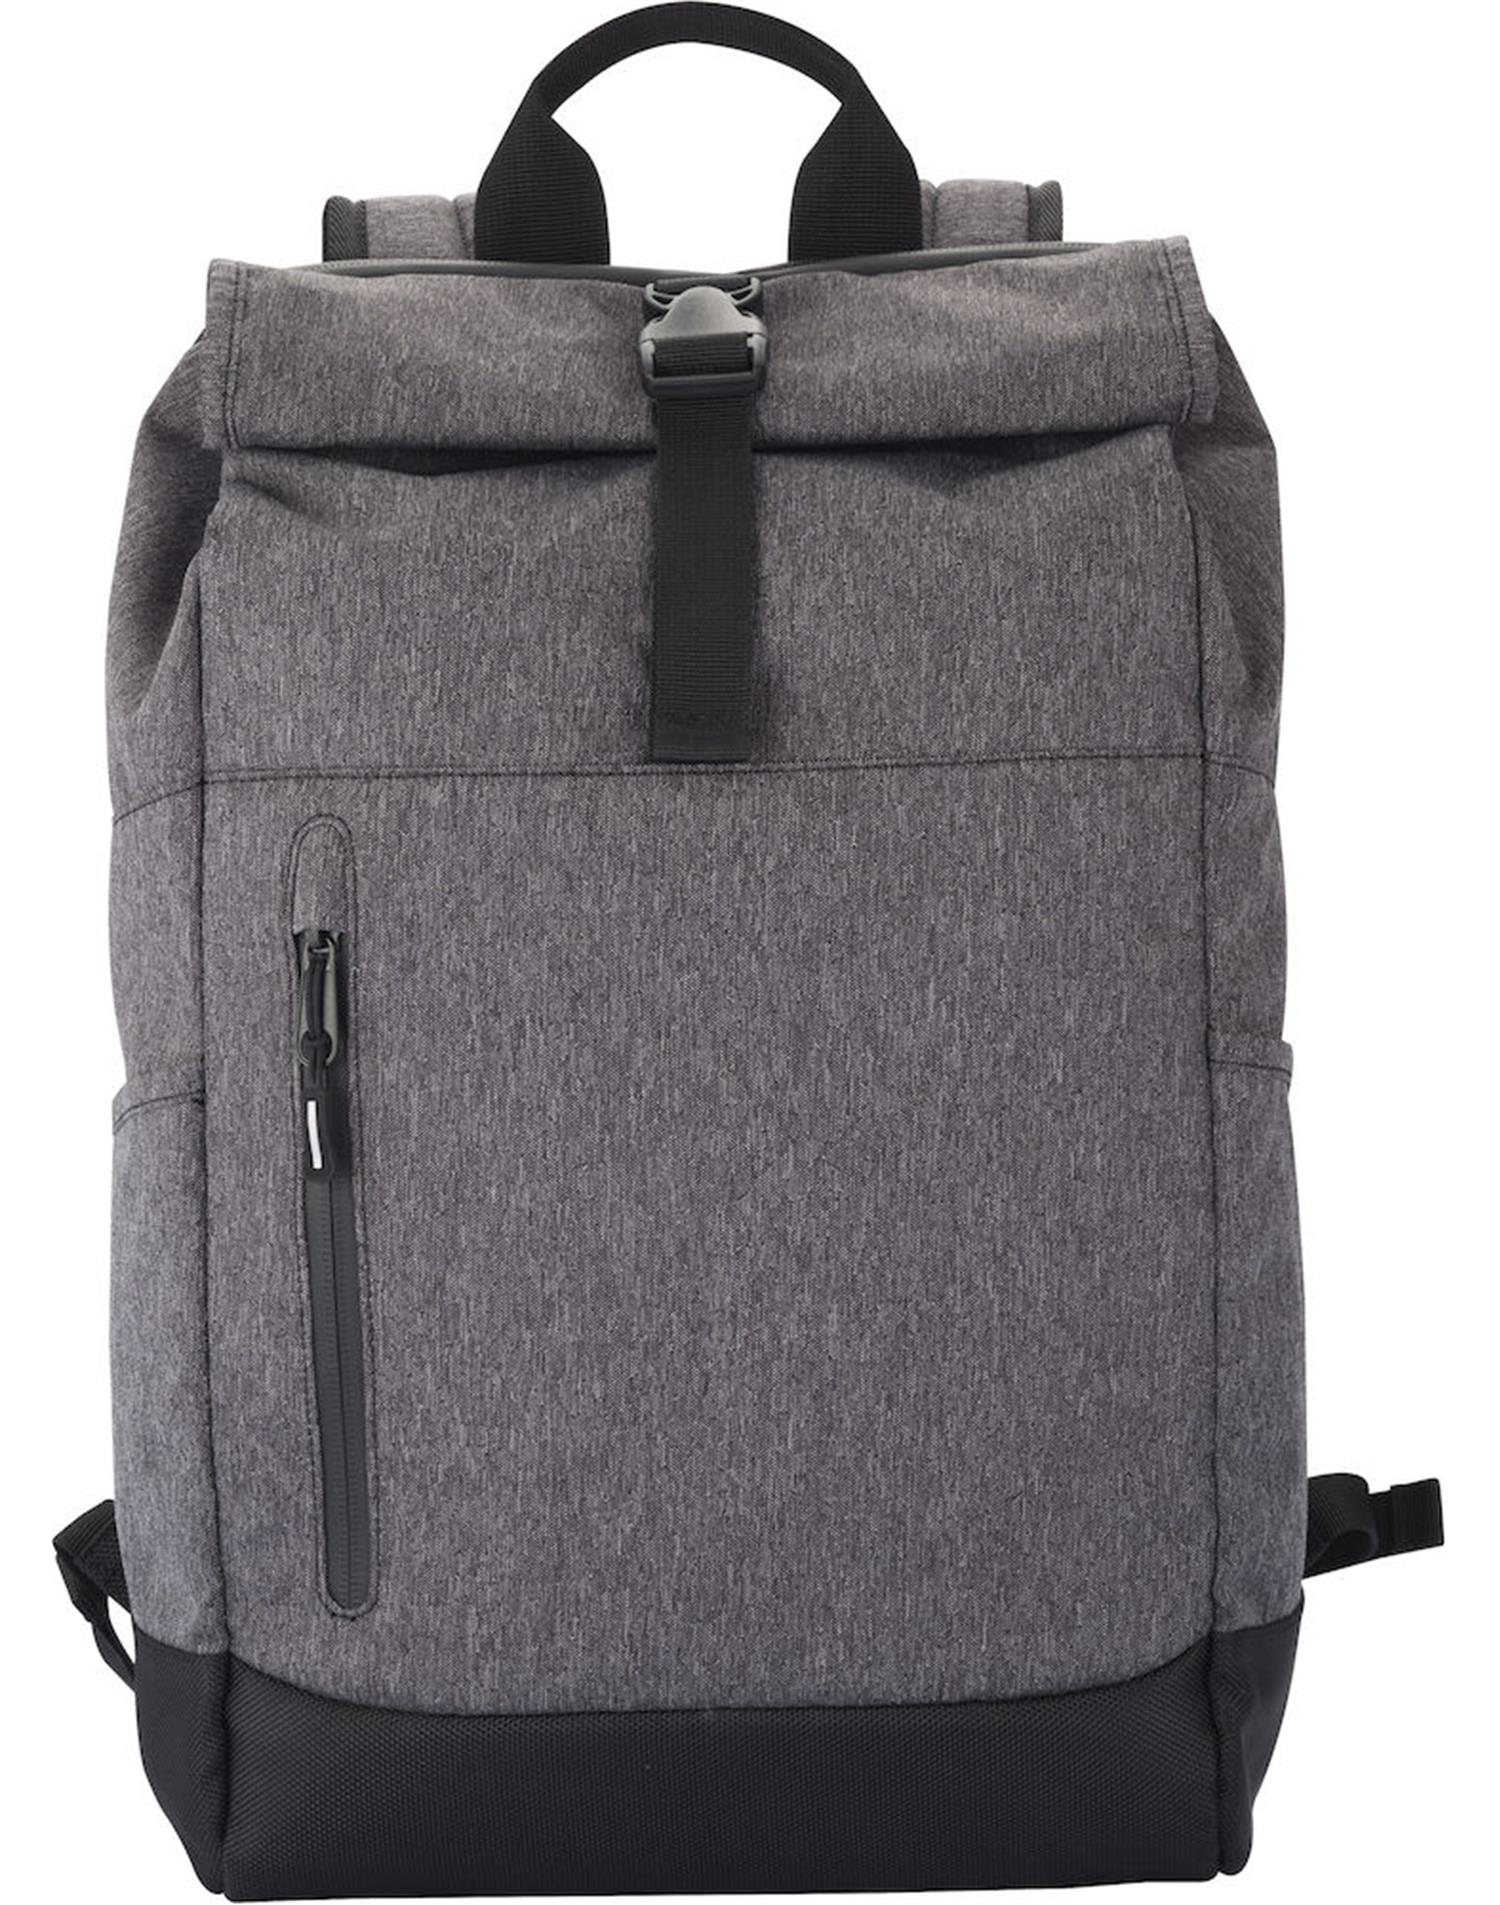 NewWave Zainetto Roll up 29x45x15cm (GRIGIO)